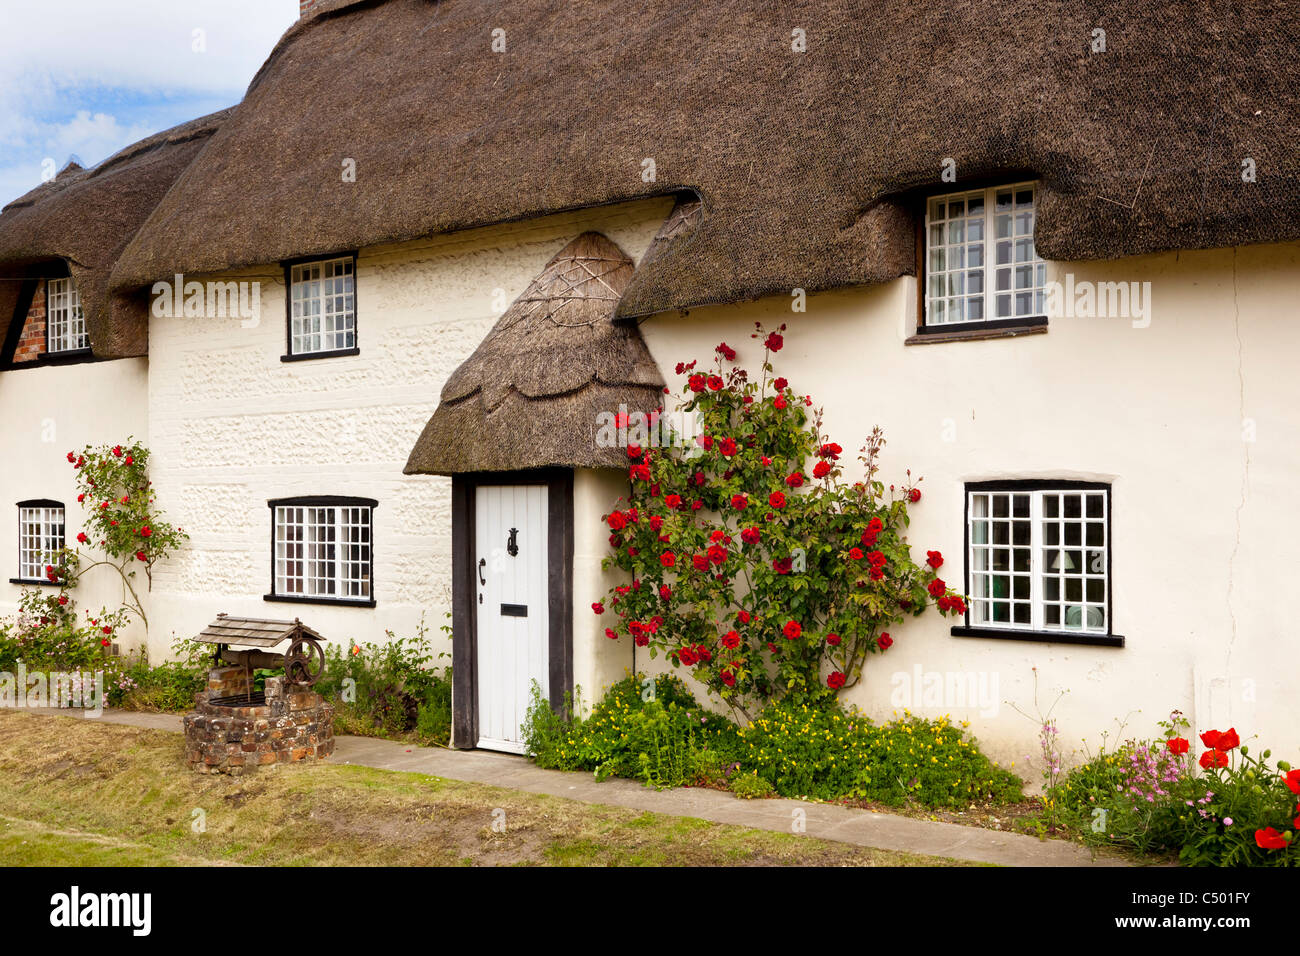 English thatched cottage - Beautiful old thatched cottage in the pretty little village of Tarrant Monkton, Dorset, - Stock Image